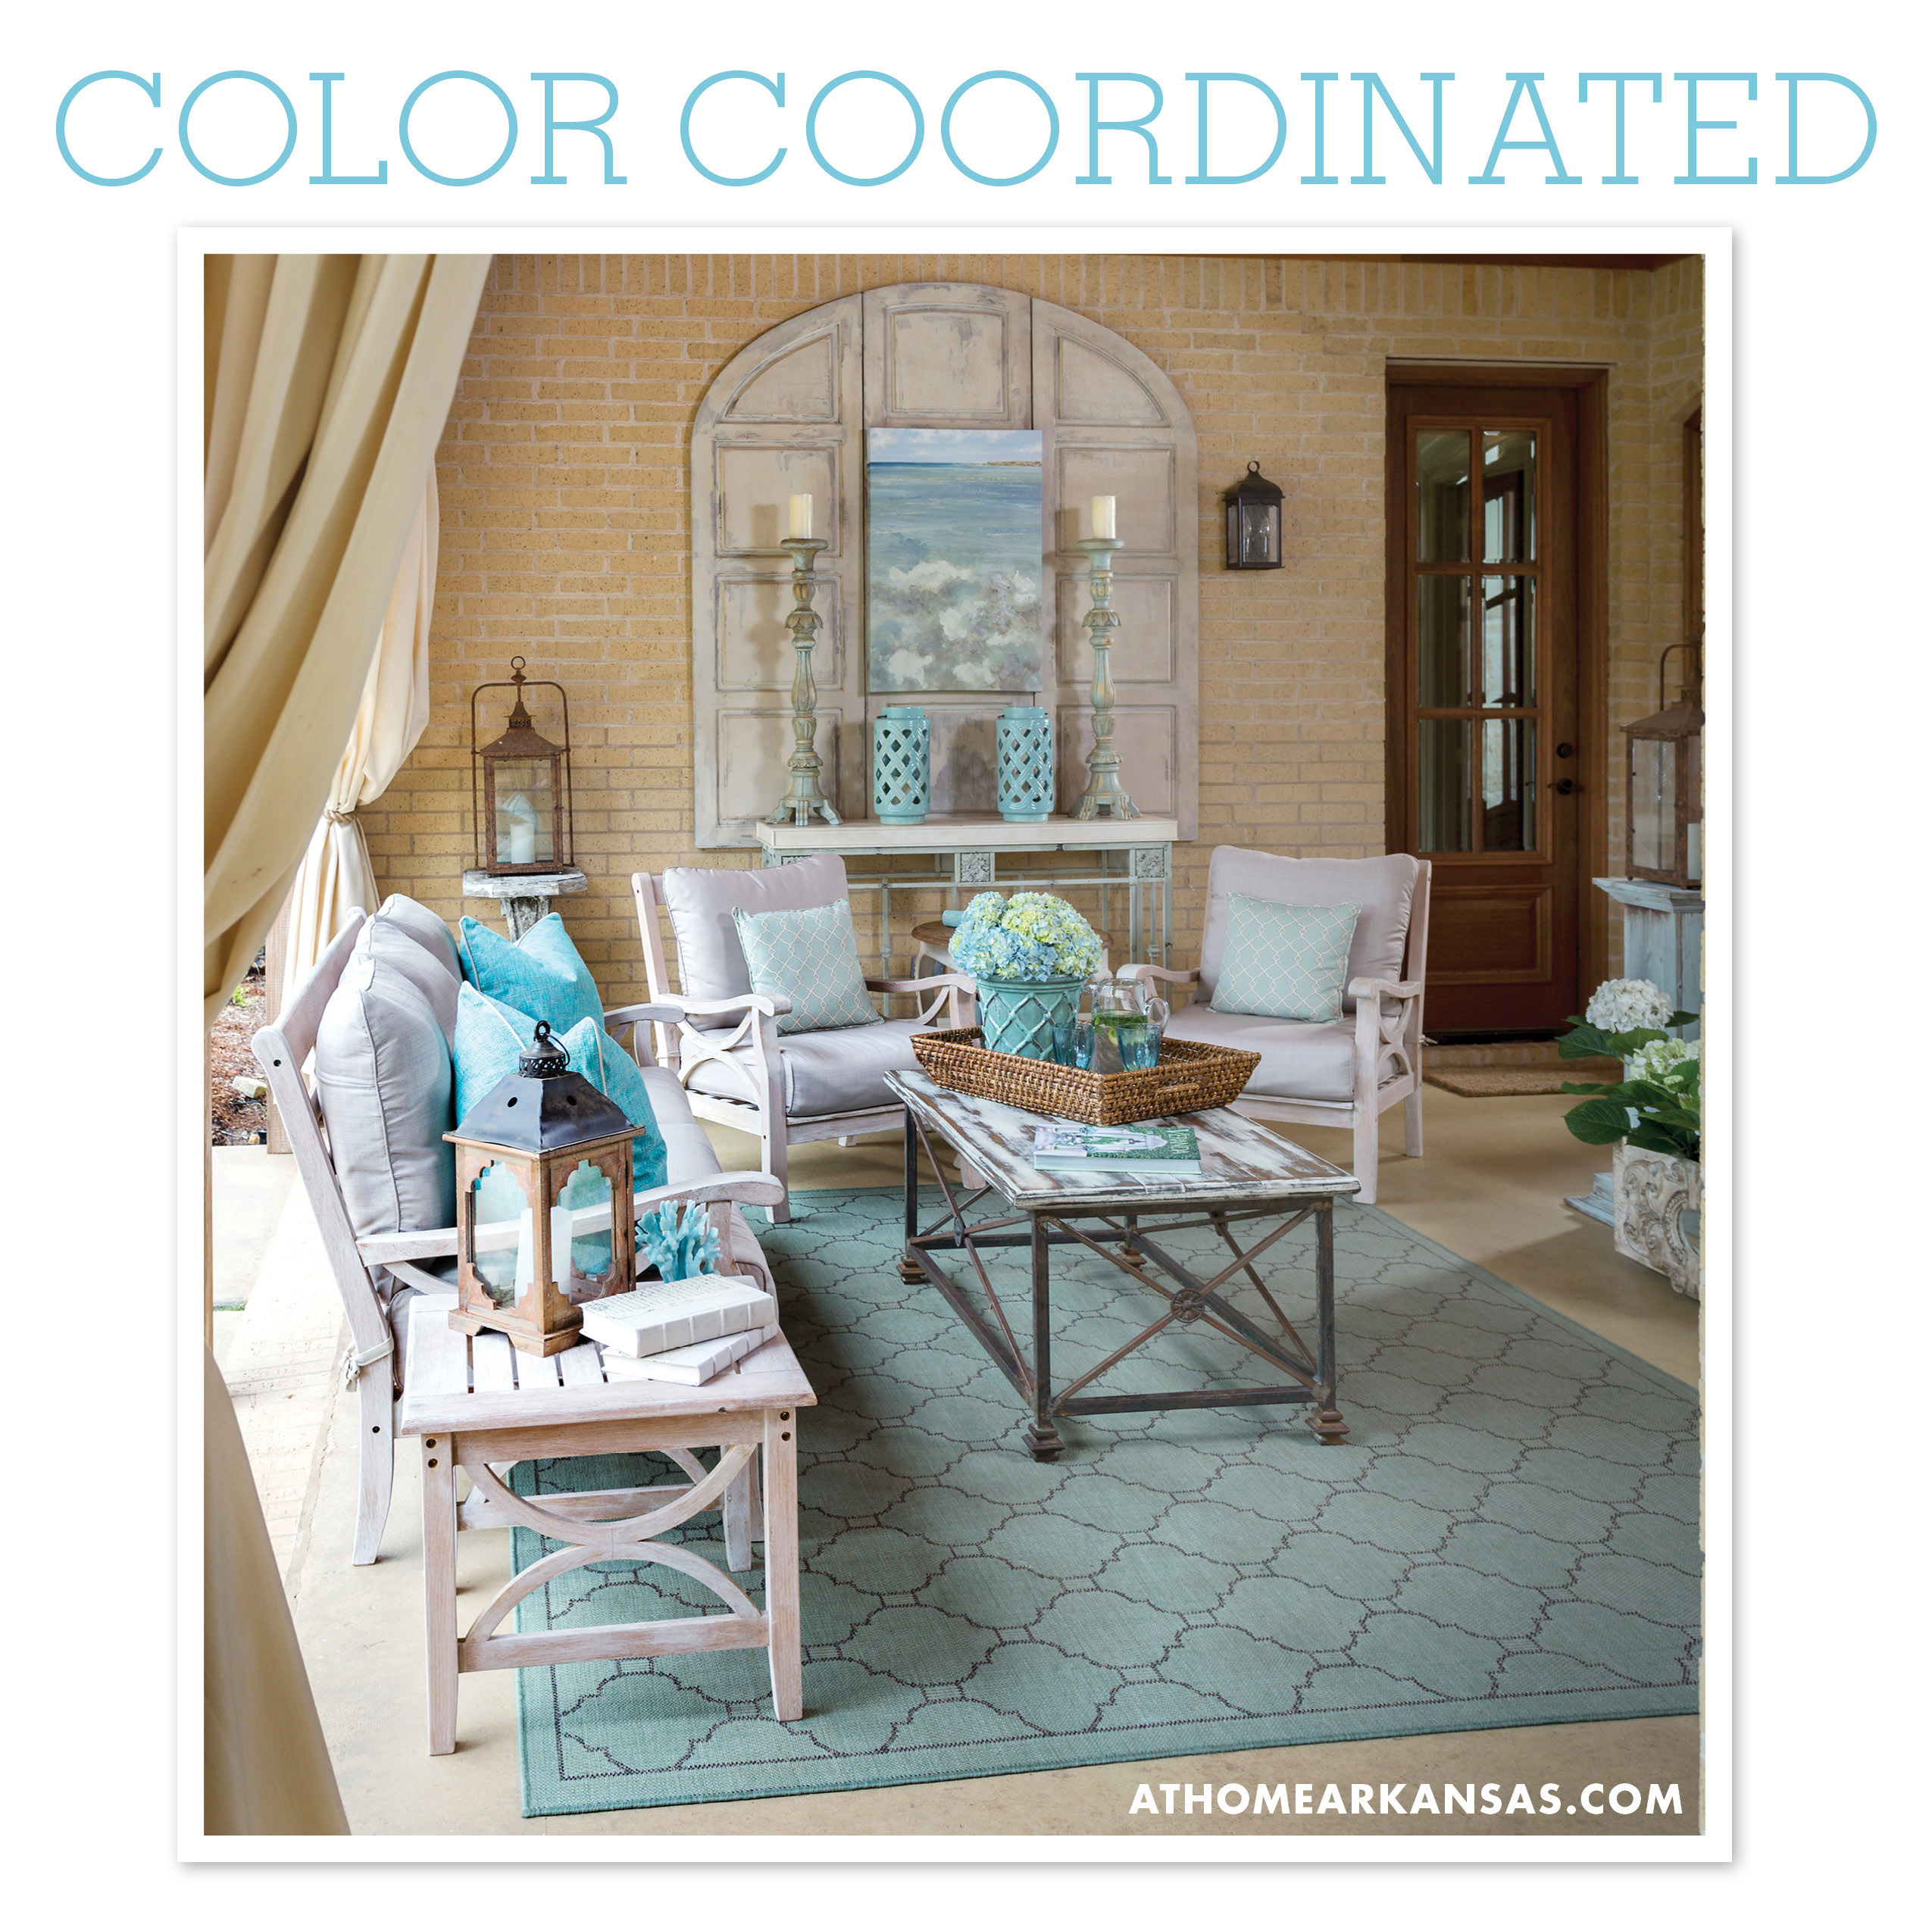 At Home in Arkansas blog | 18 August 2014 | Color Coordinated: Peaceful Blue Patio